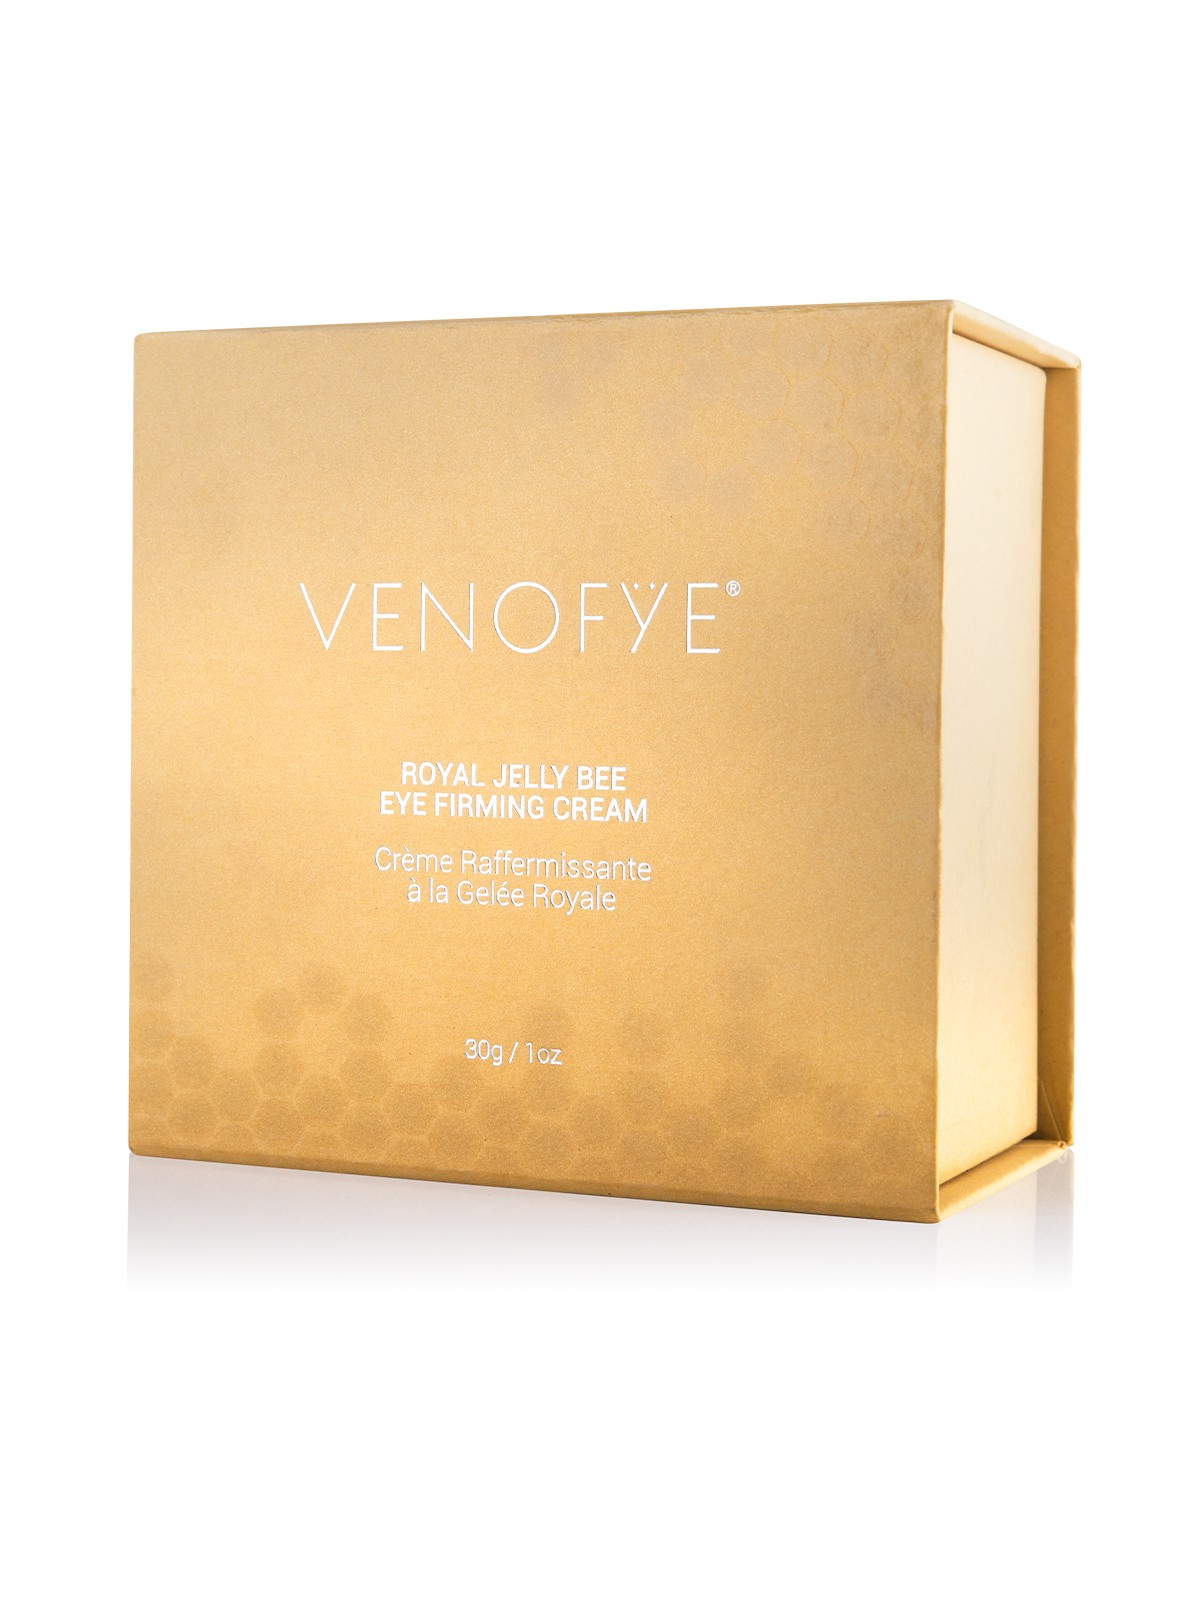 Royal Jelly Bee Eye Firming Cream in its case